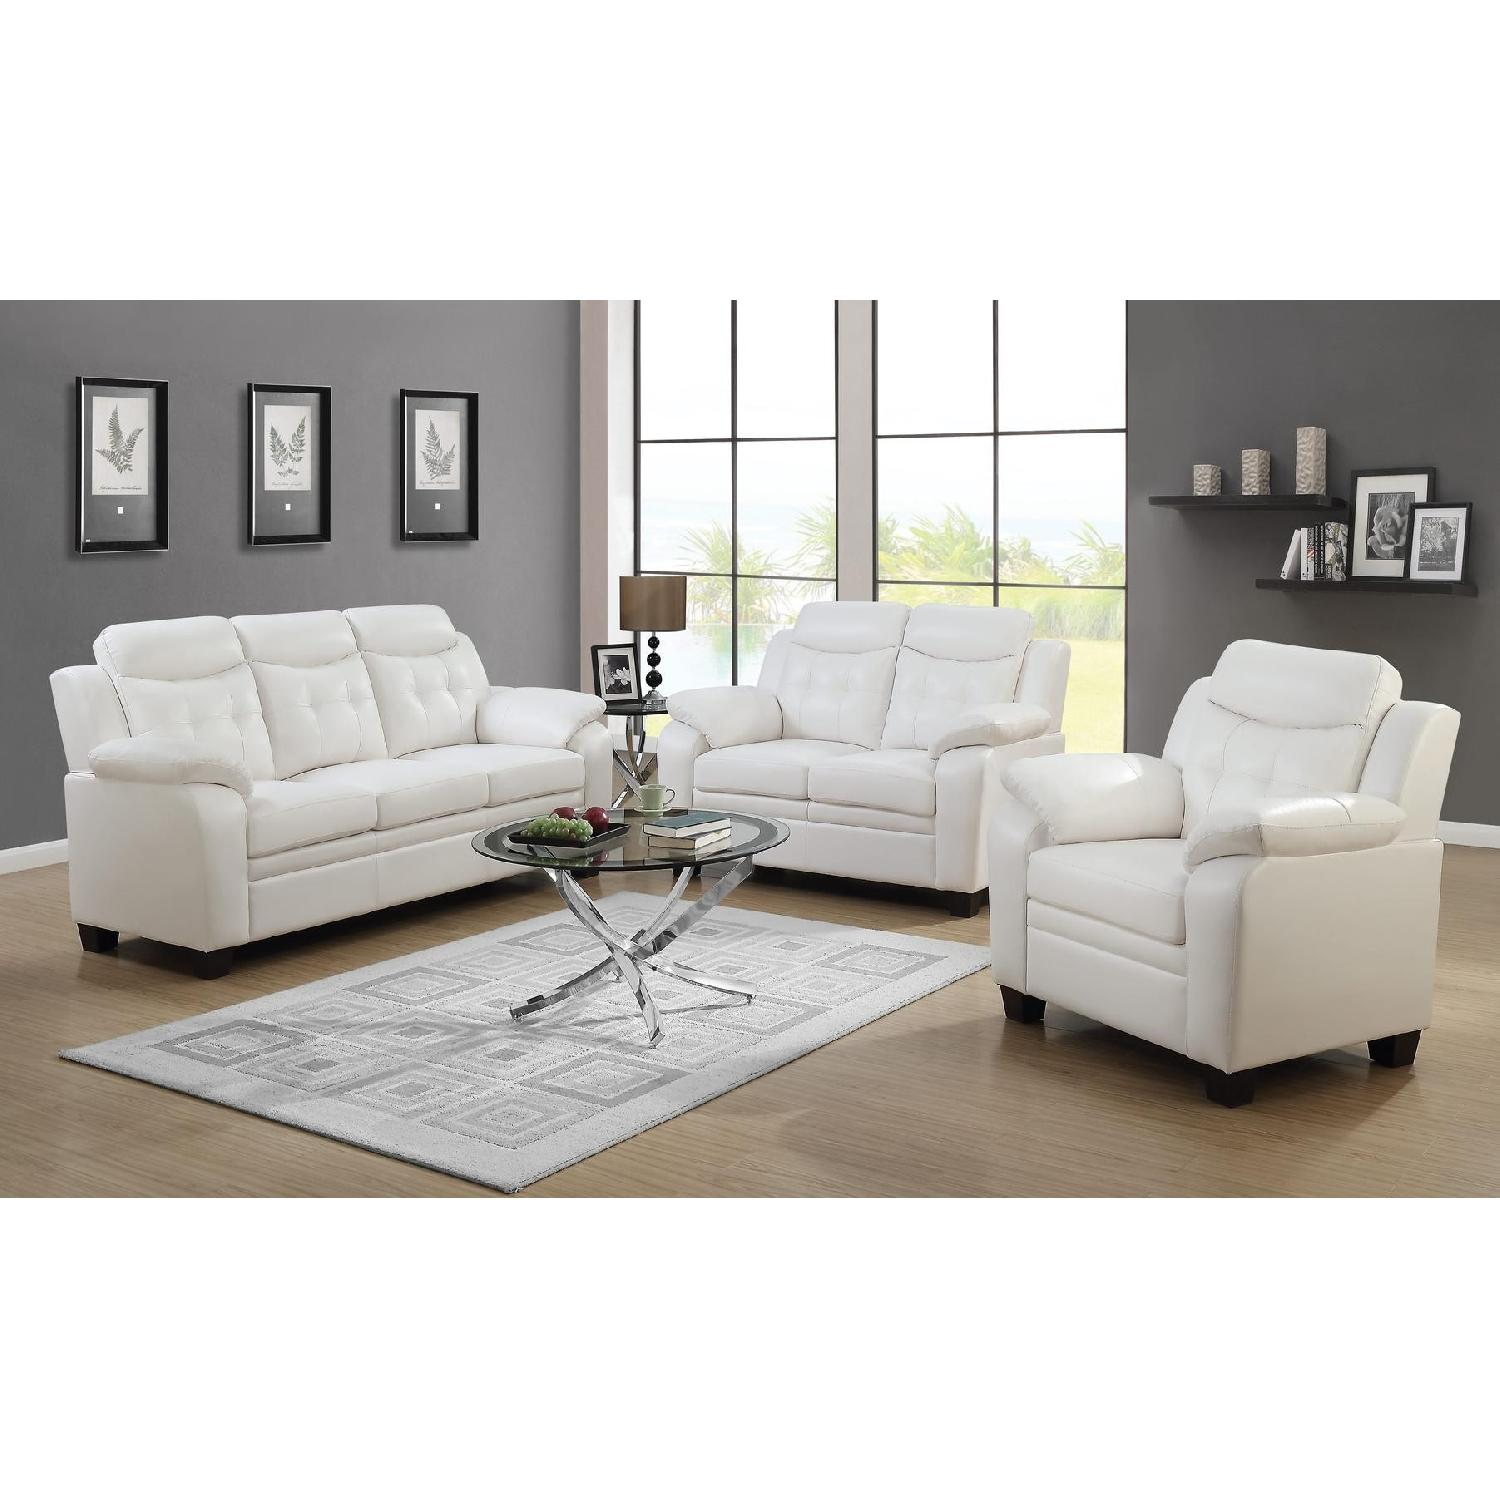 Casual Style Chair in White Leatherette w/ Arm & Headrests